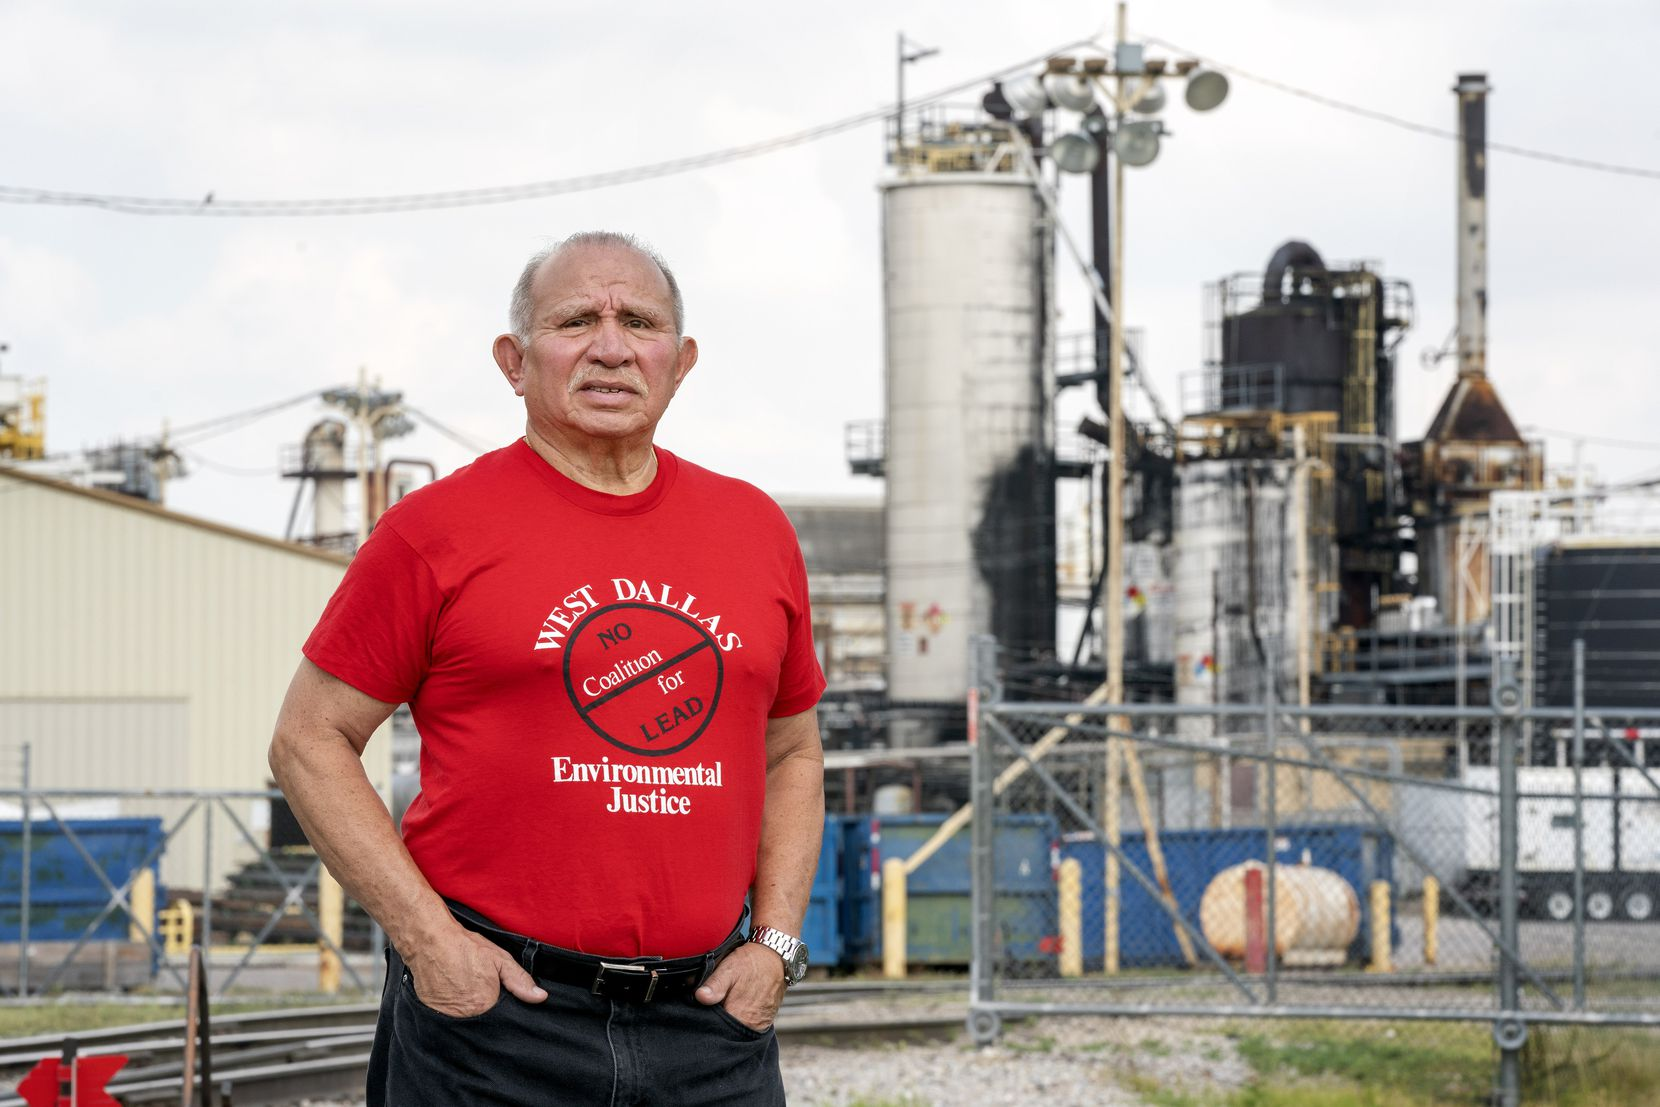 Luis Sepulveda, 69, founding president of the West Dallas Coalition for Environmental Justice, poses for a portrait in front of the GAF roofing materials plant, Monday, August 16, 2021 in West Dallas.  Sepulveda, who has long advocated for environmental justice in West Dallas has recently joined a locally organized effort concerned about potential pollutants, odors and noise from the GAF plant, where his father once worked.